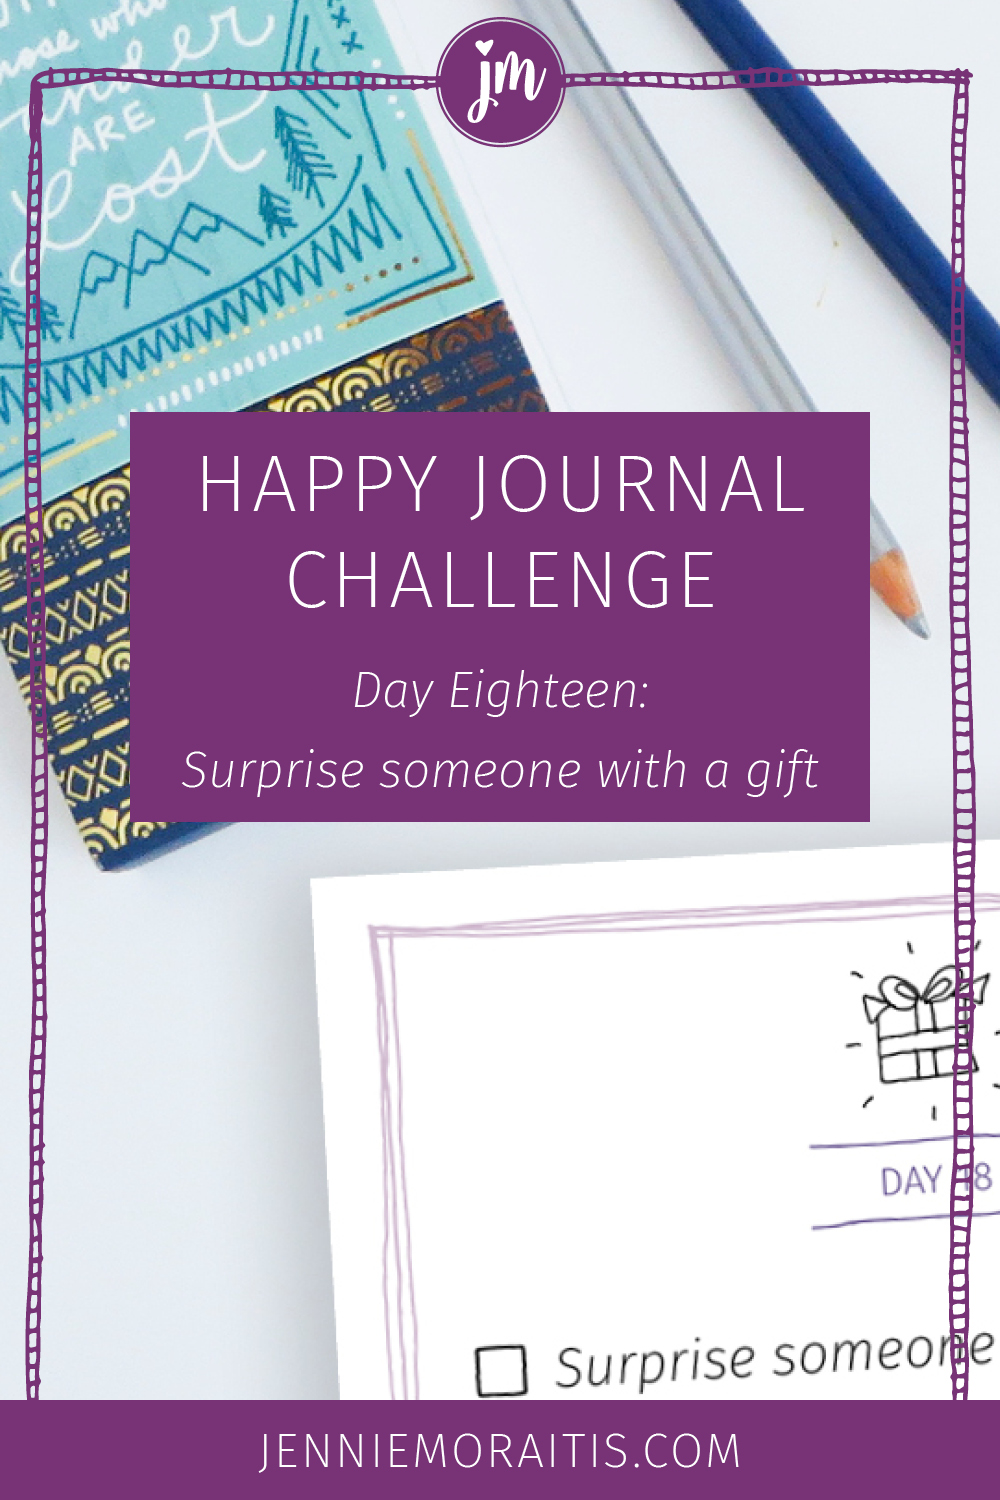 Have you ever received a surprise present? Aren't they THE BEST?! Today we're going to pay it forward in our happy journal challenge and make someone's day. Click over to learn how.